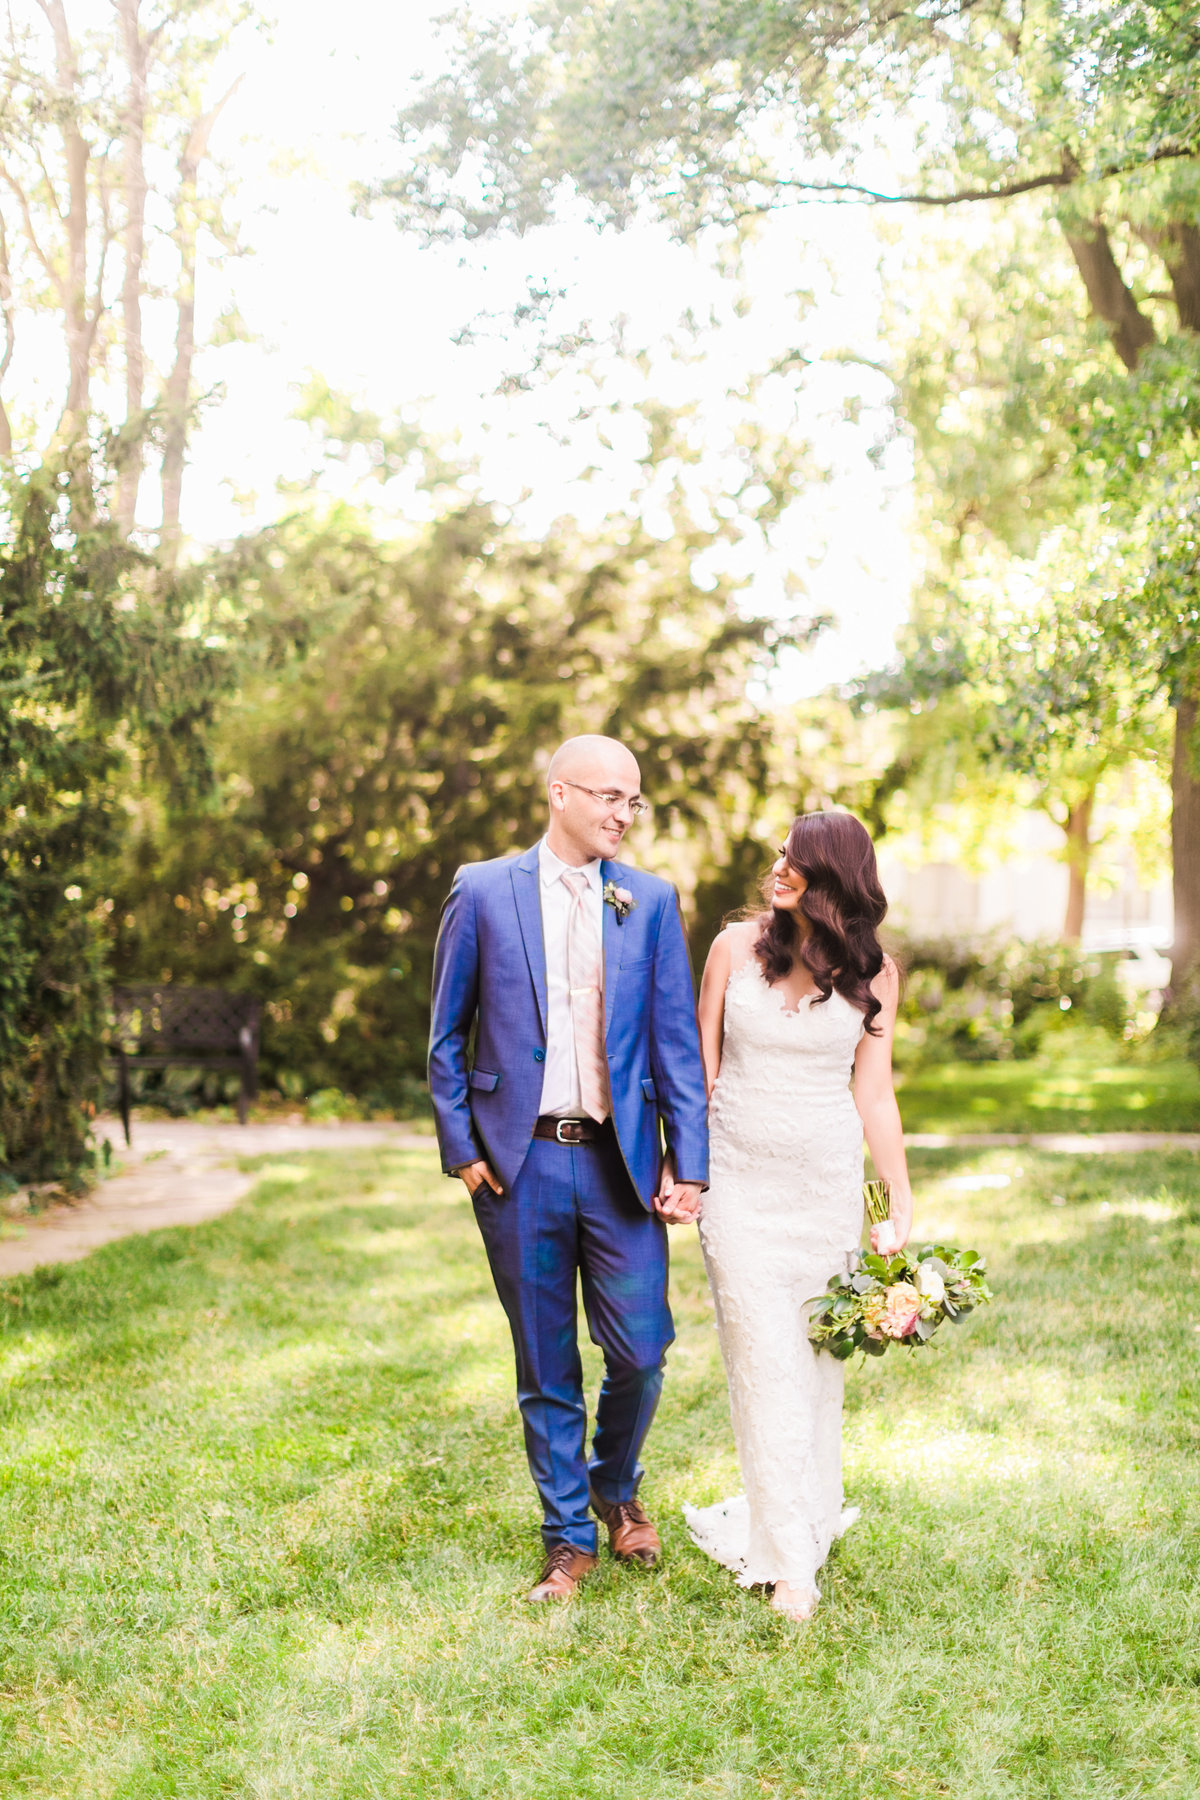 TheSimpsonHouseWedding_MariamDoug_CatherineRhodesPhotography-8